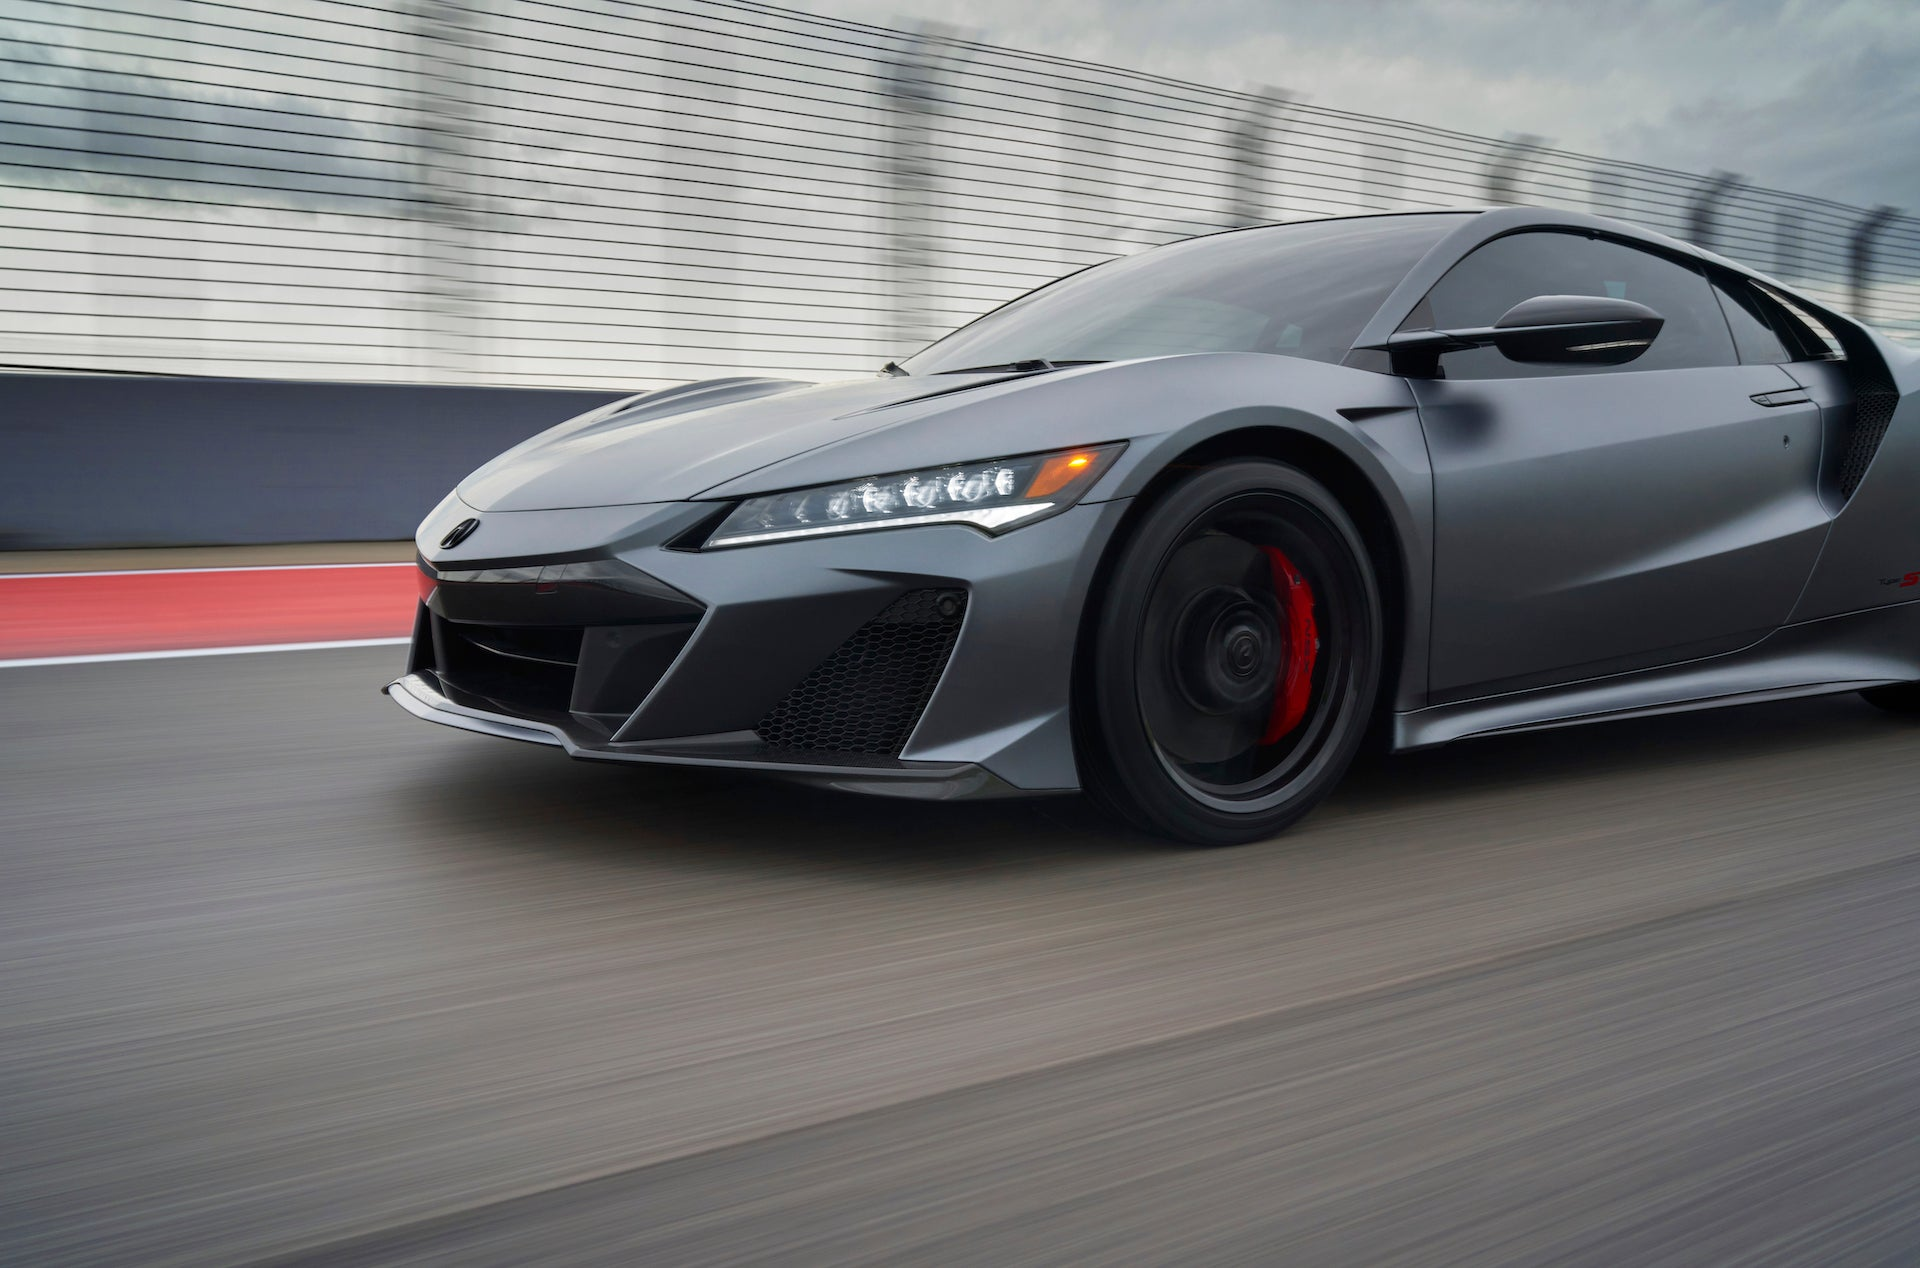 2022 Acura NSX Type S: A Meaner, 600-HP Sendoff for Honda's Supercar